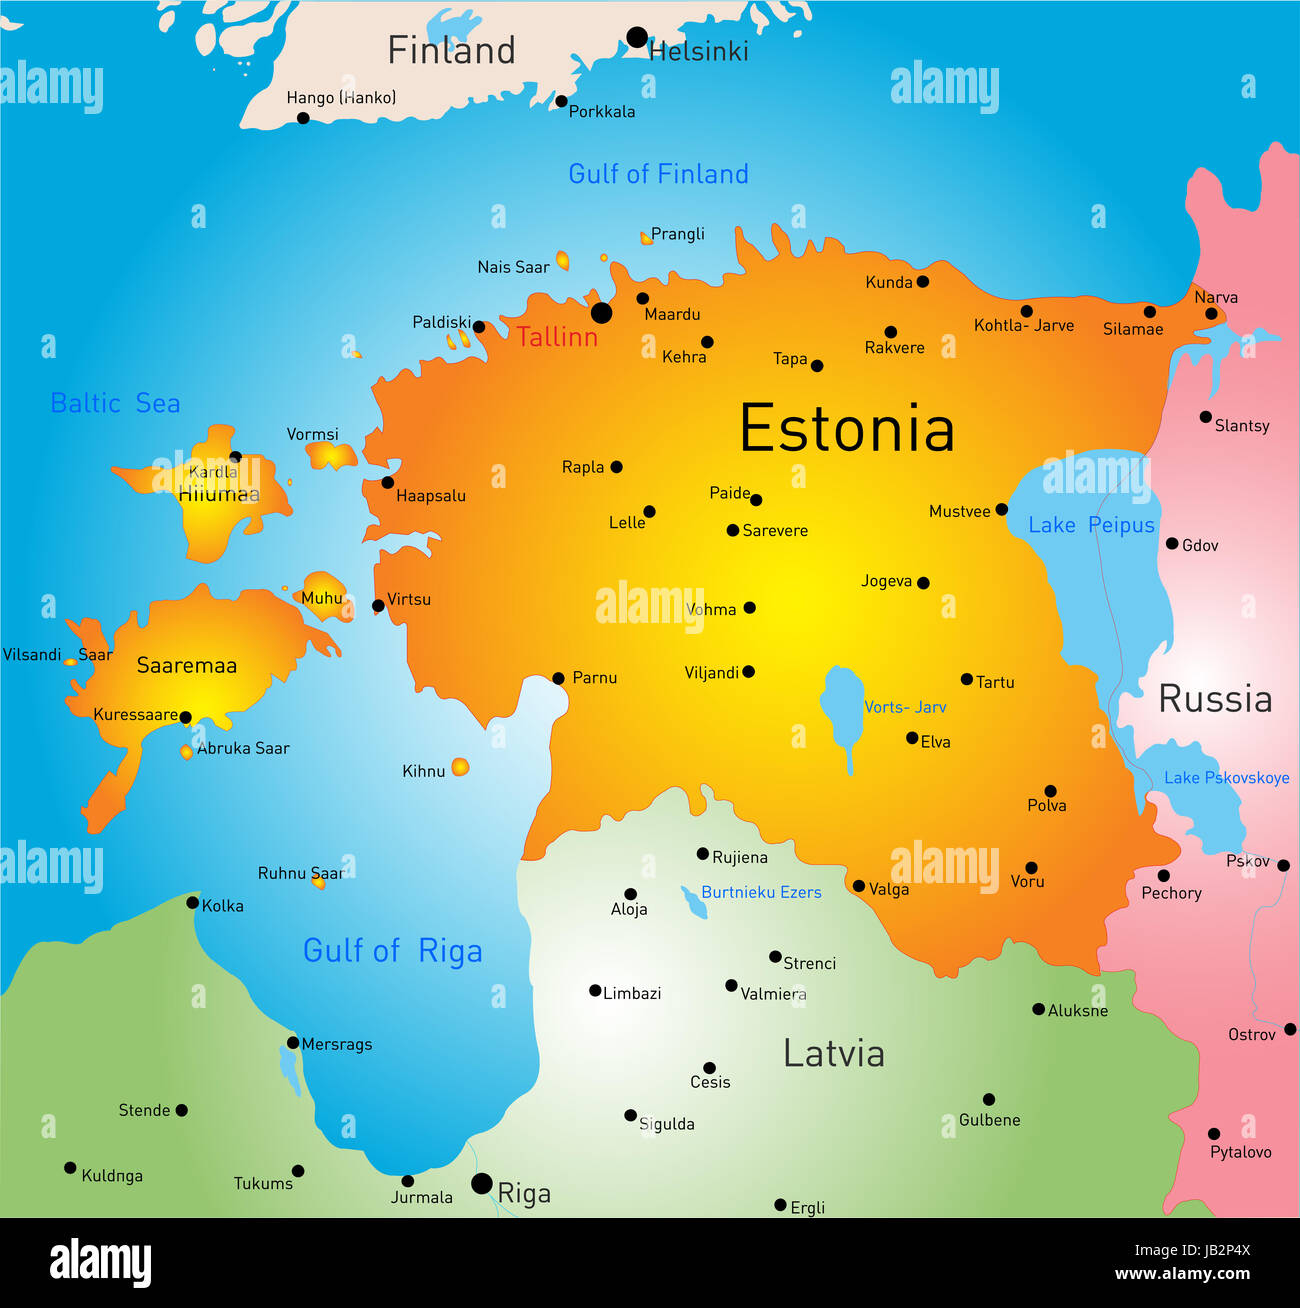 Vector color map of estonia country stock photo 144505450 alamy vector color map of estonia country gumiabroncs